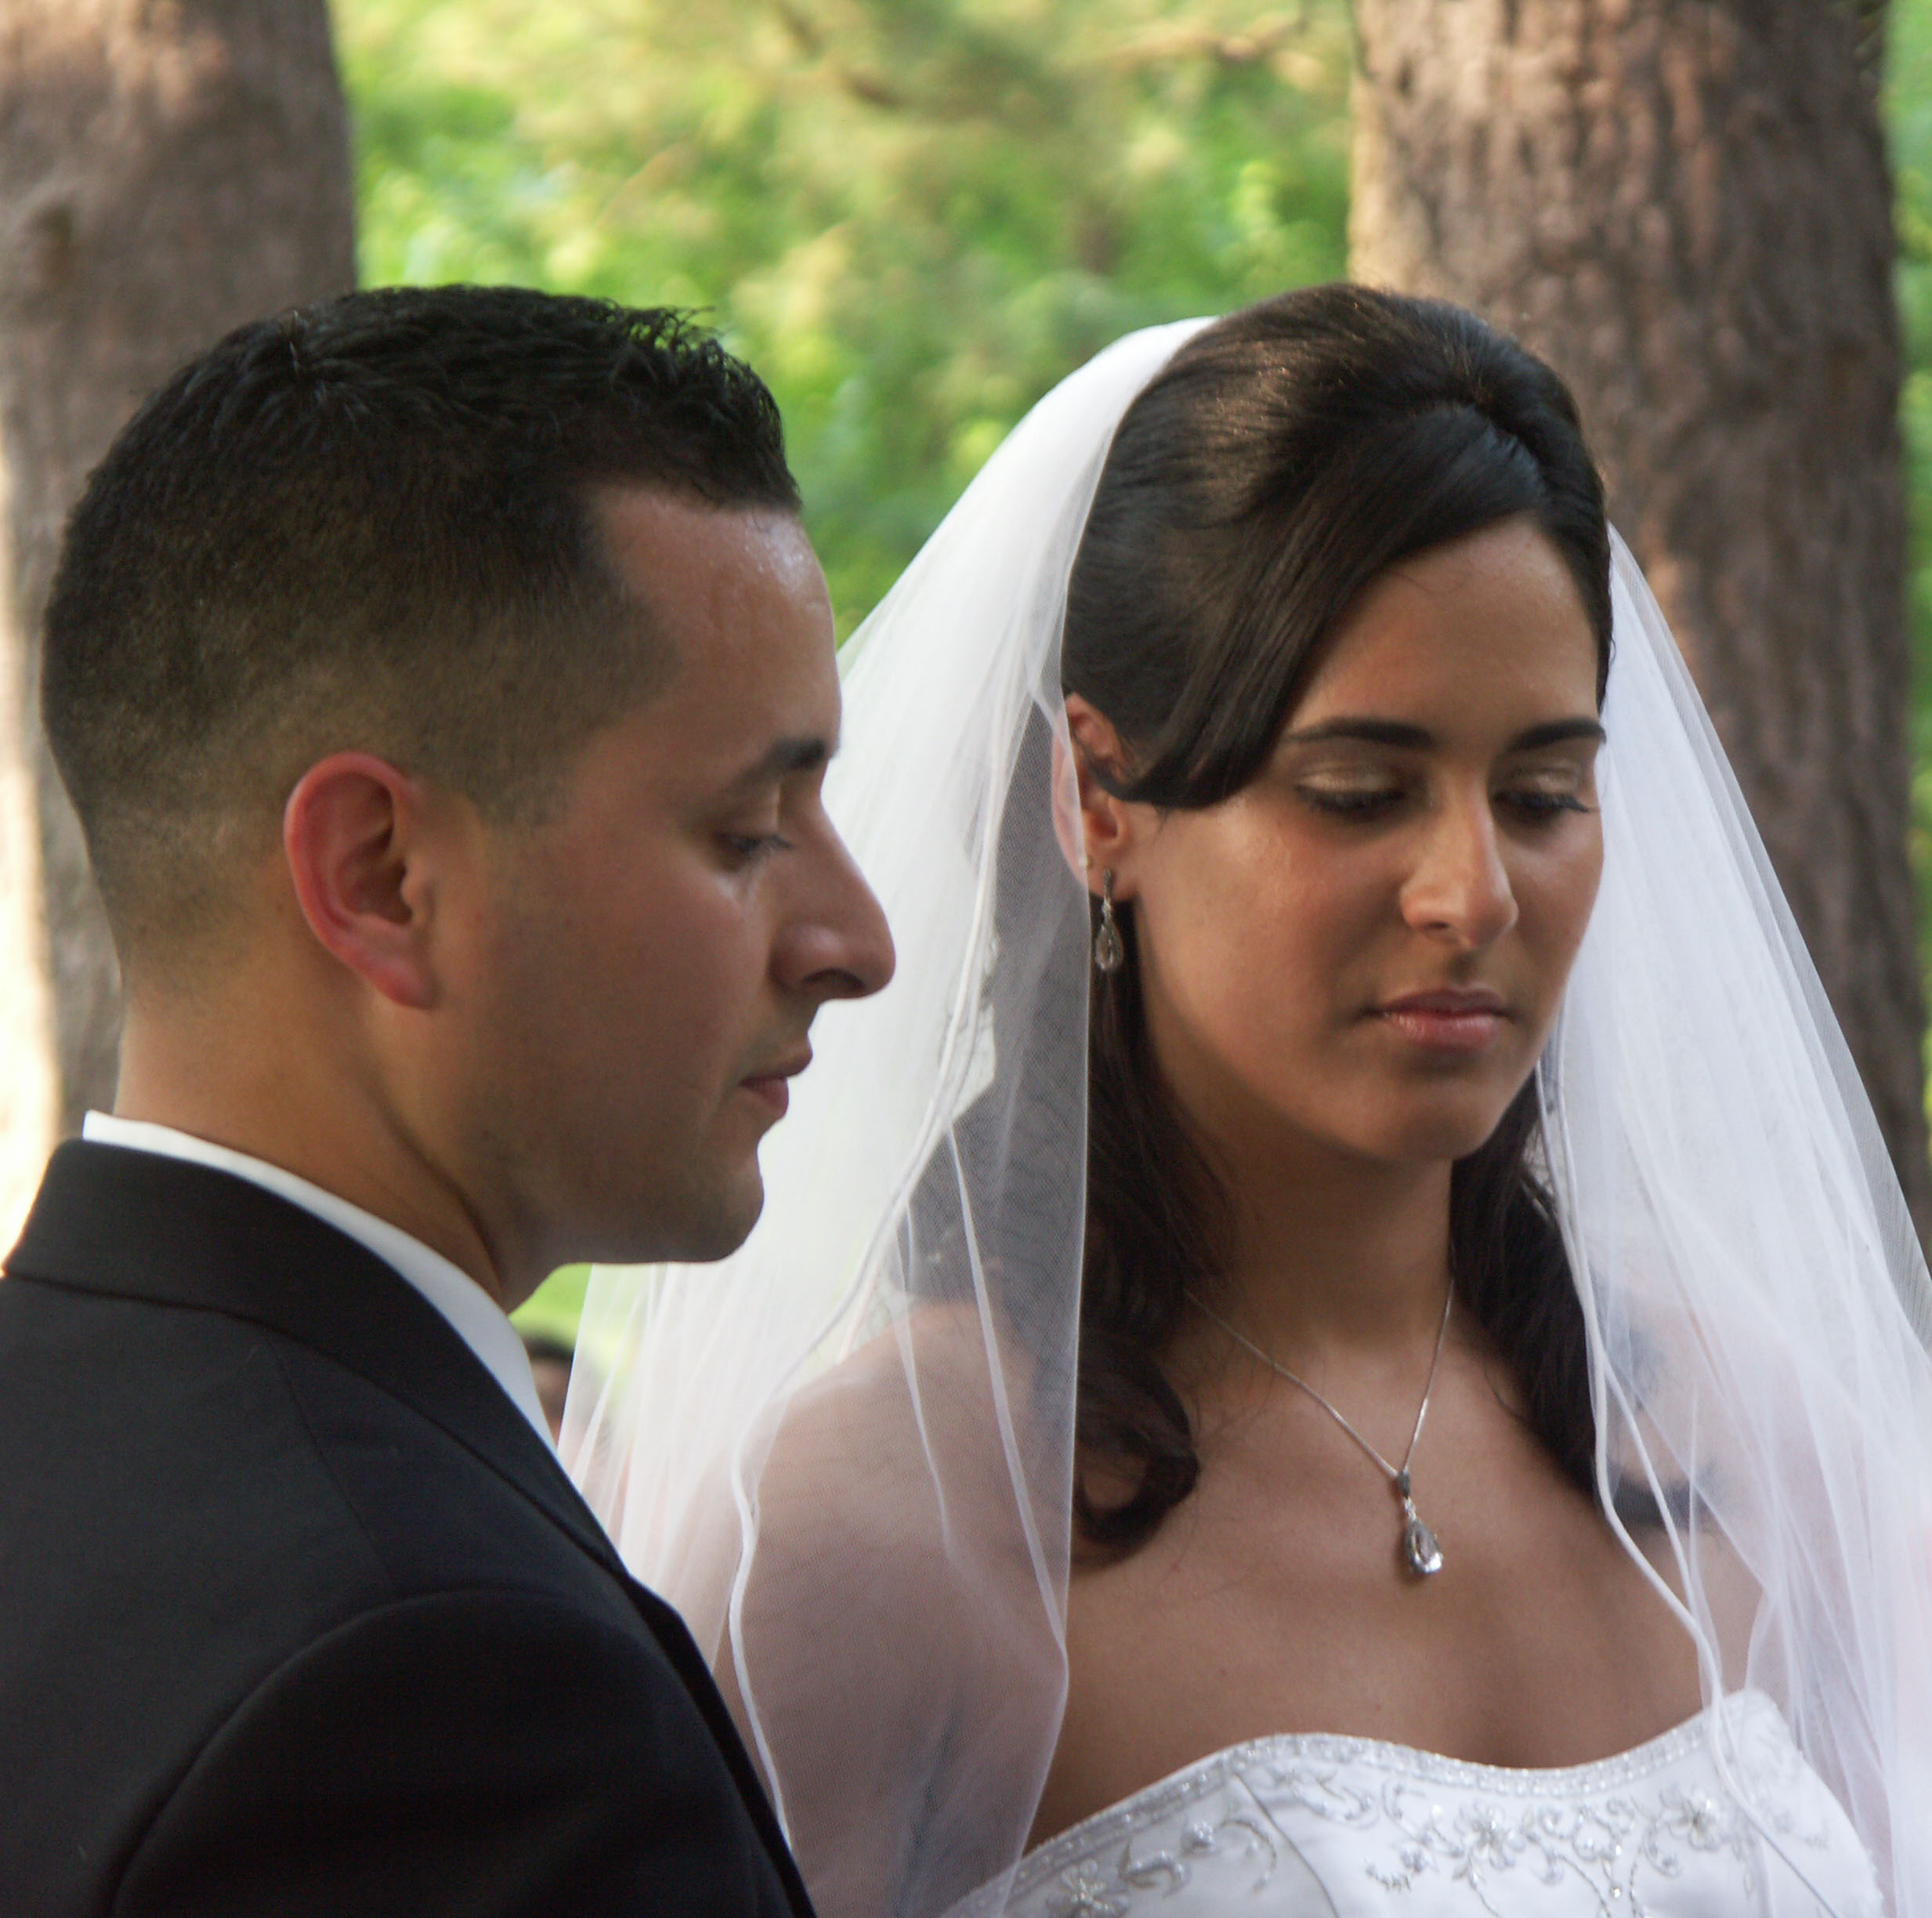 Formal wedding portrait at the Norfol Botanical Garden , photography by virginia beach portrait photographer , Diamond Photography 757-416-4694